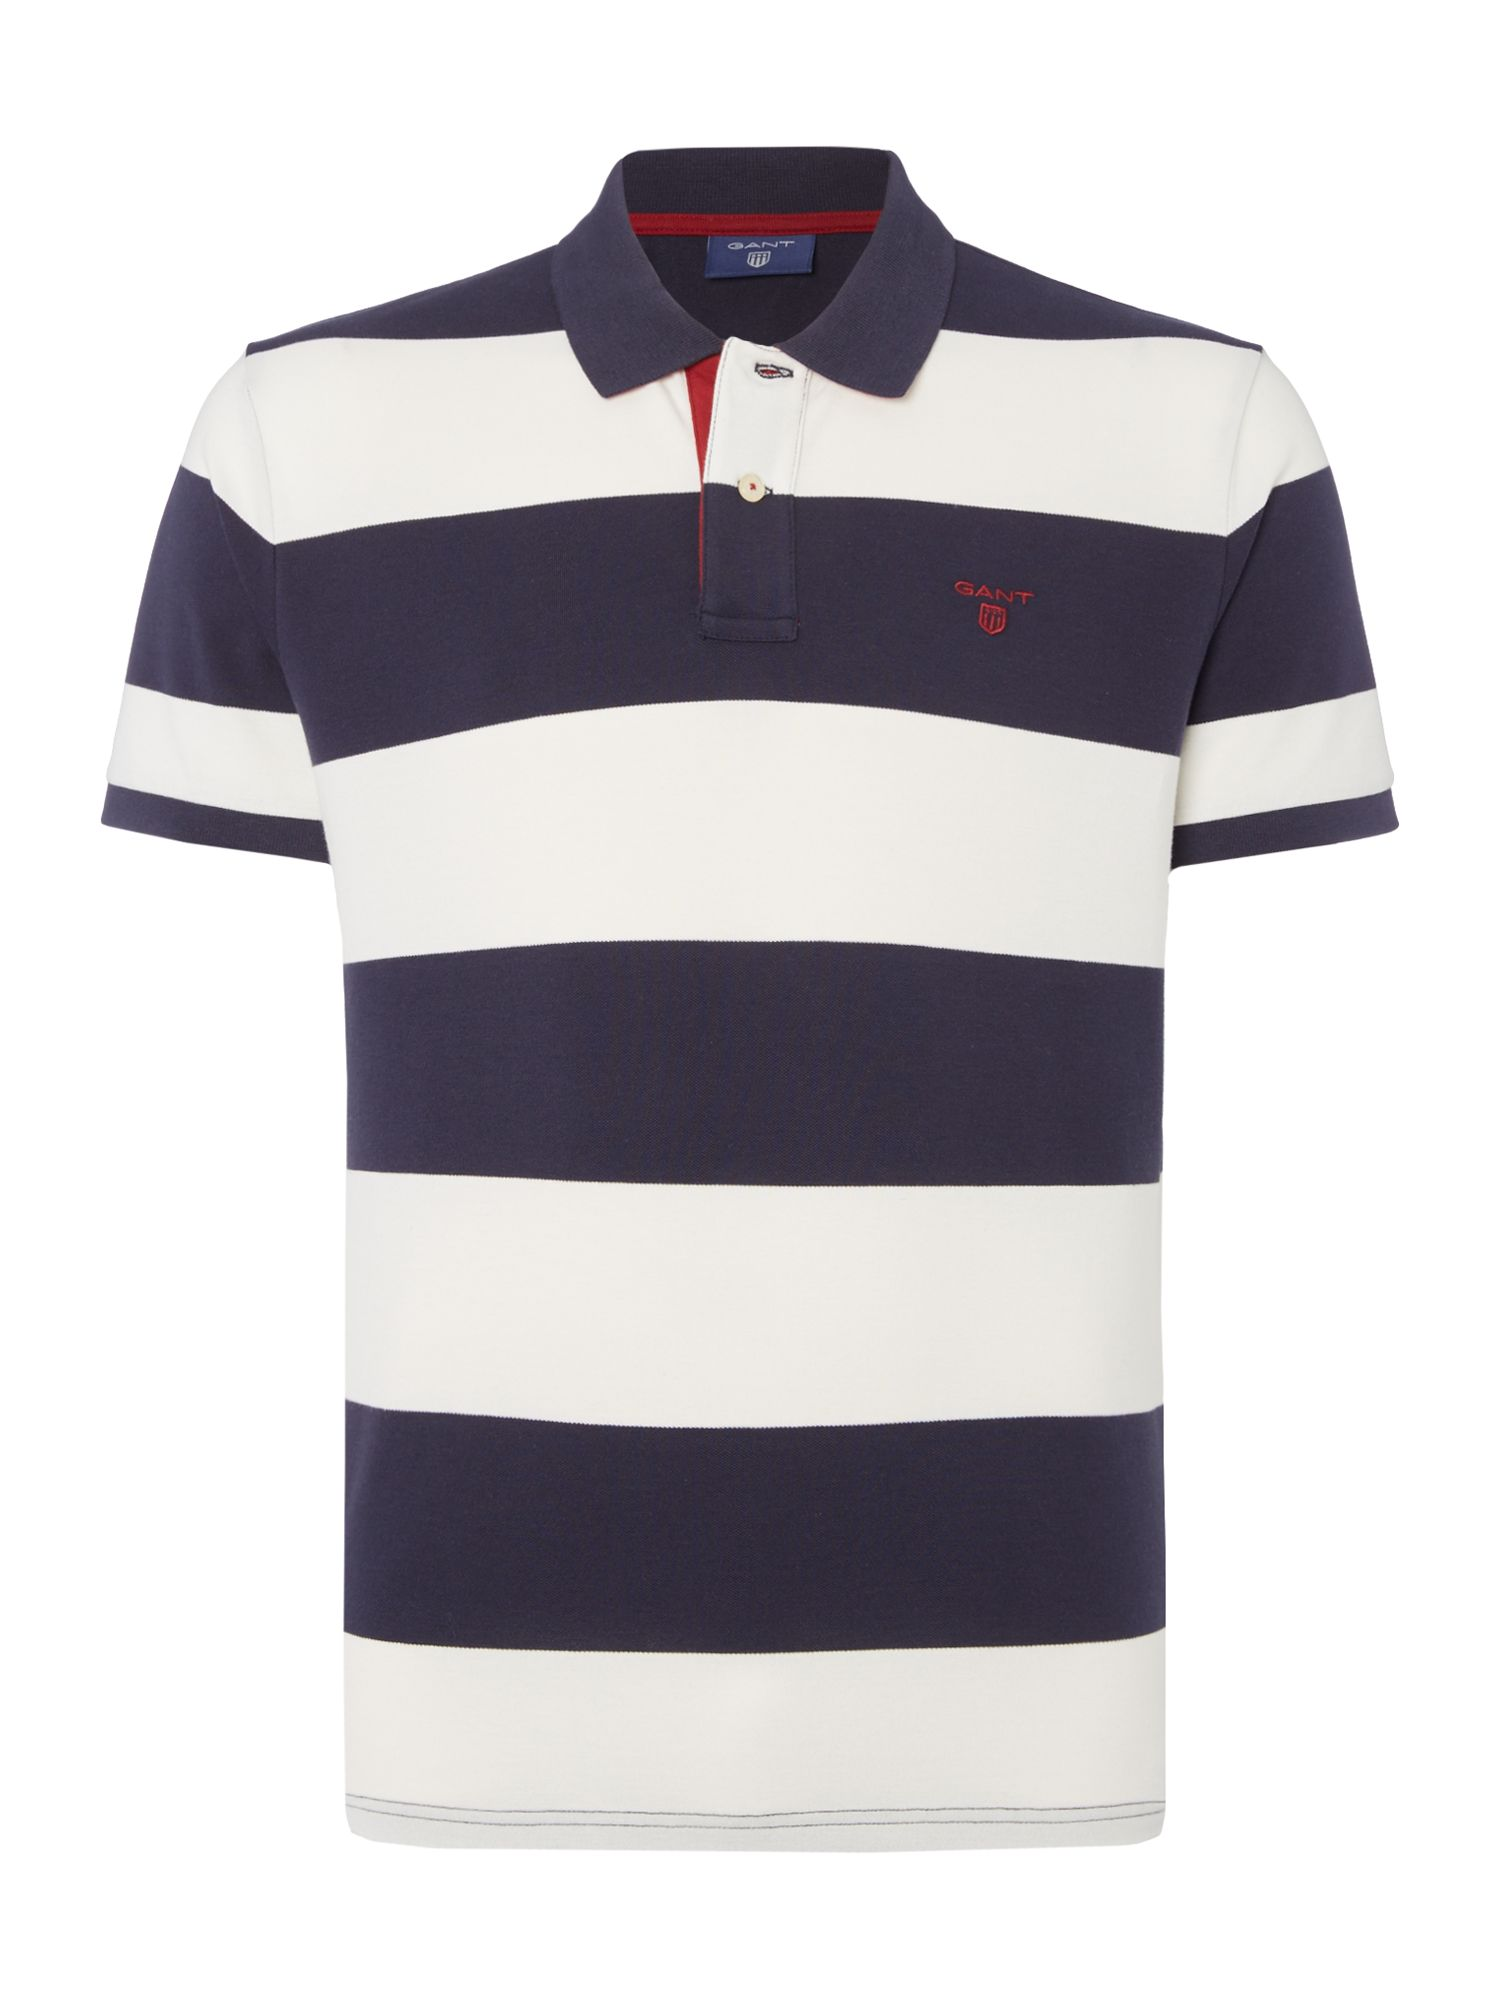 Men's Gant Short Sleeve Bar Stripe Polo Shirt, Blue